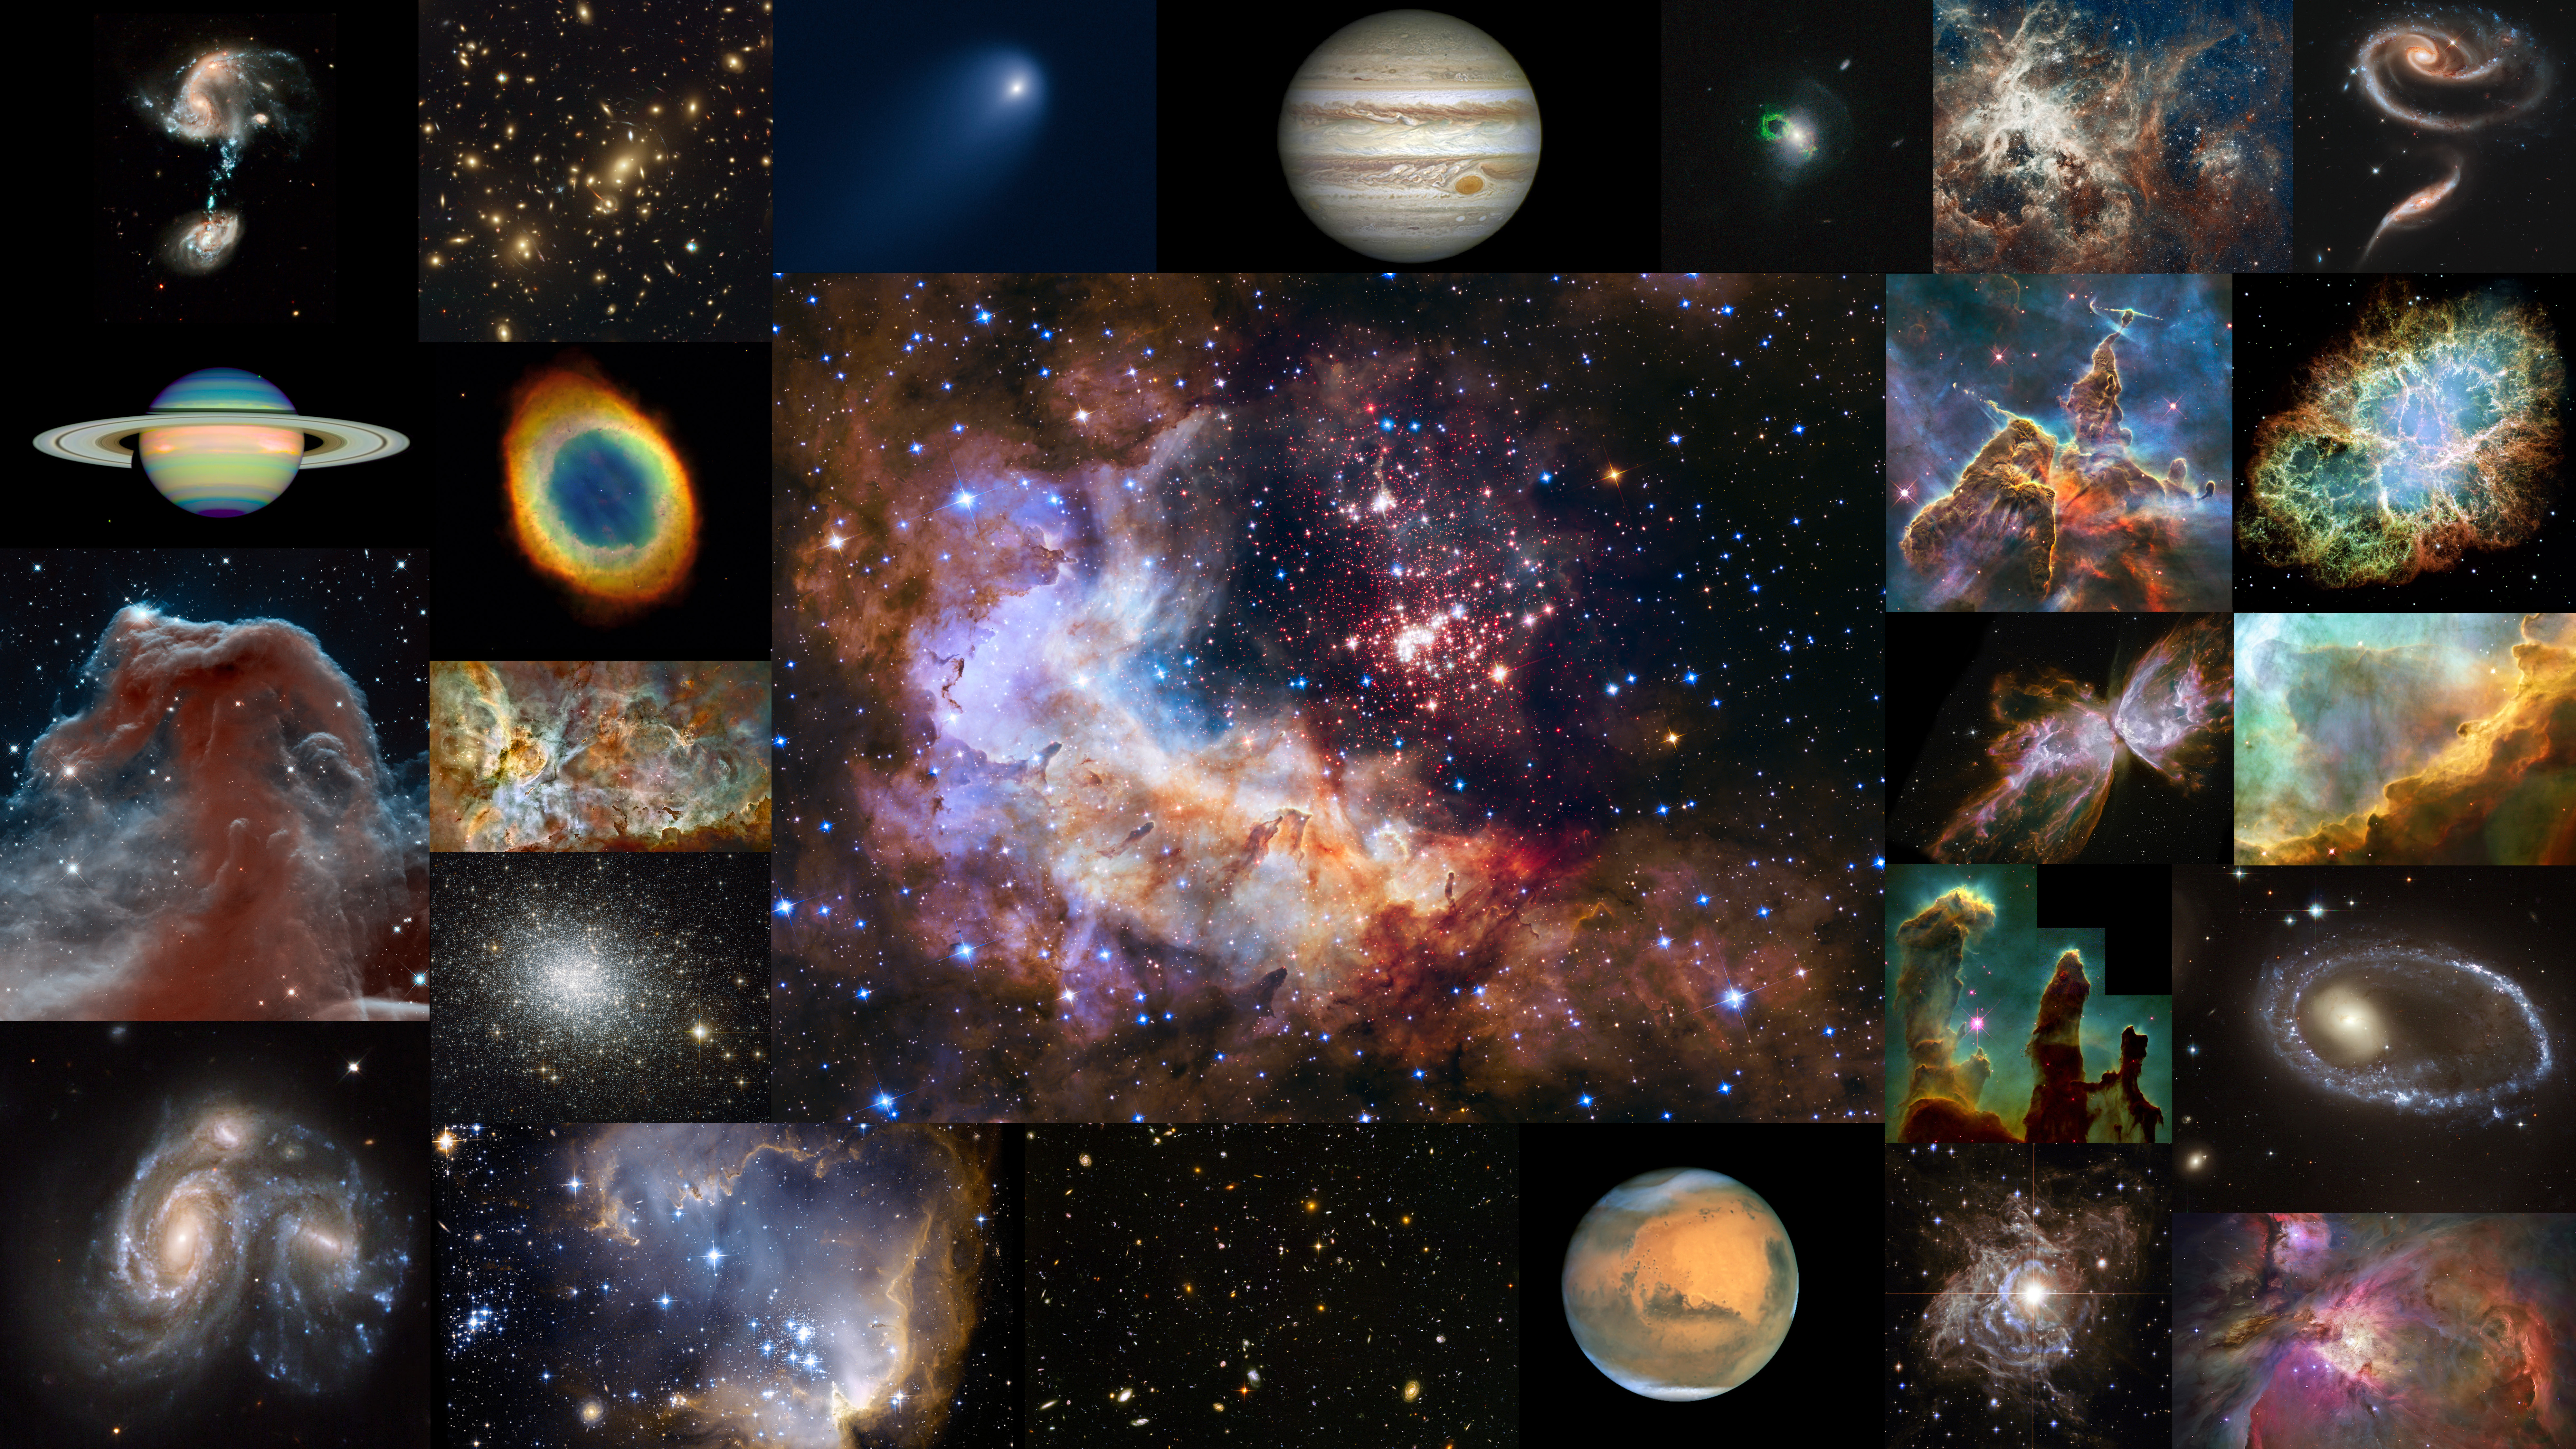 space in images 2015